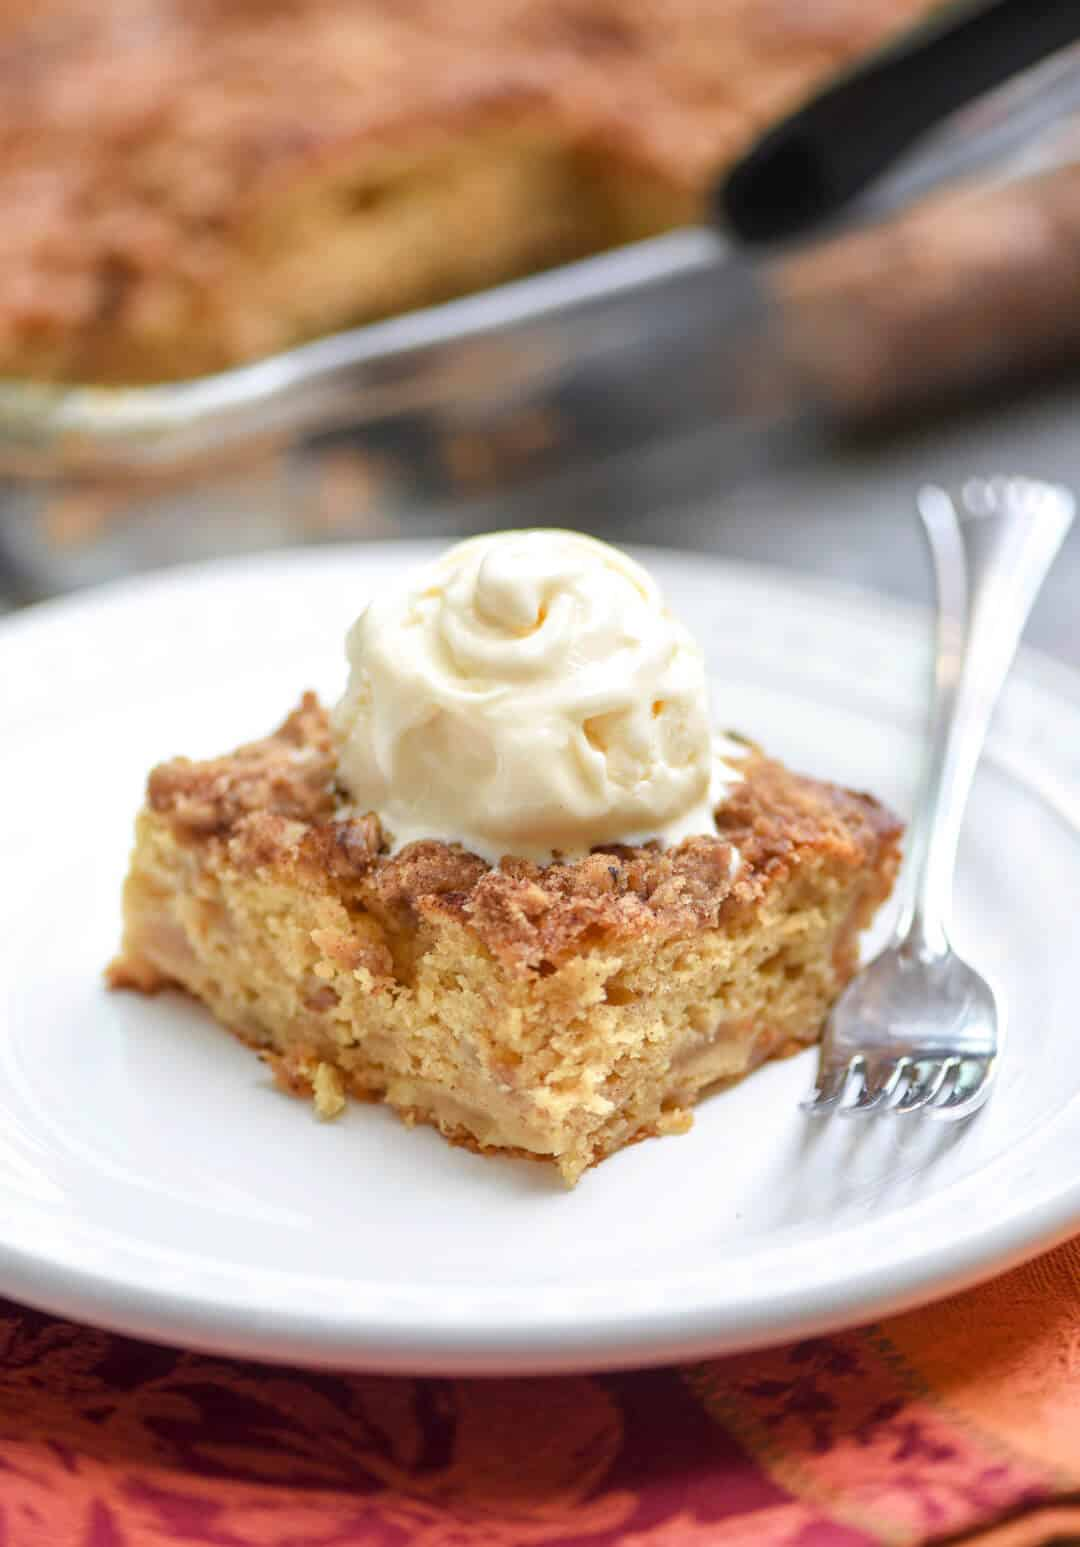 A super moist cake that is studded with apples and topped with a walnut streusel. Serve this Apple Crumble Cake with ice cream for dessert and eat the leftovers with breakfast the next morning!